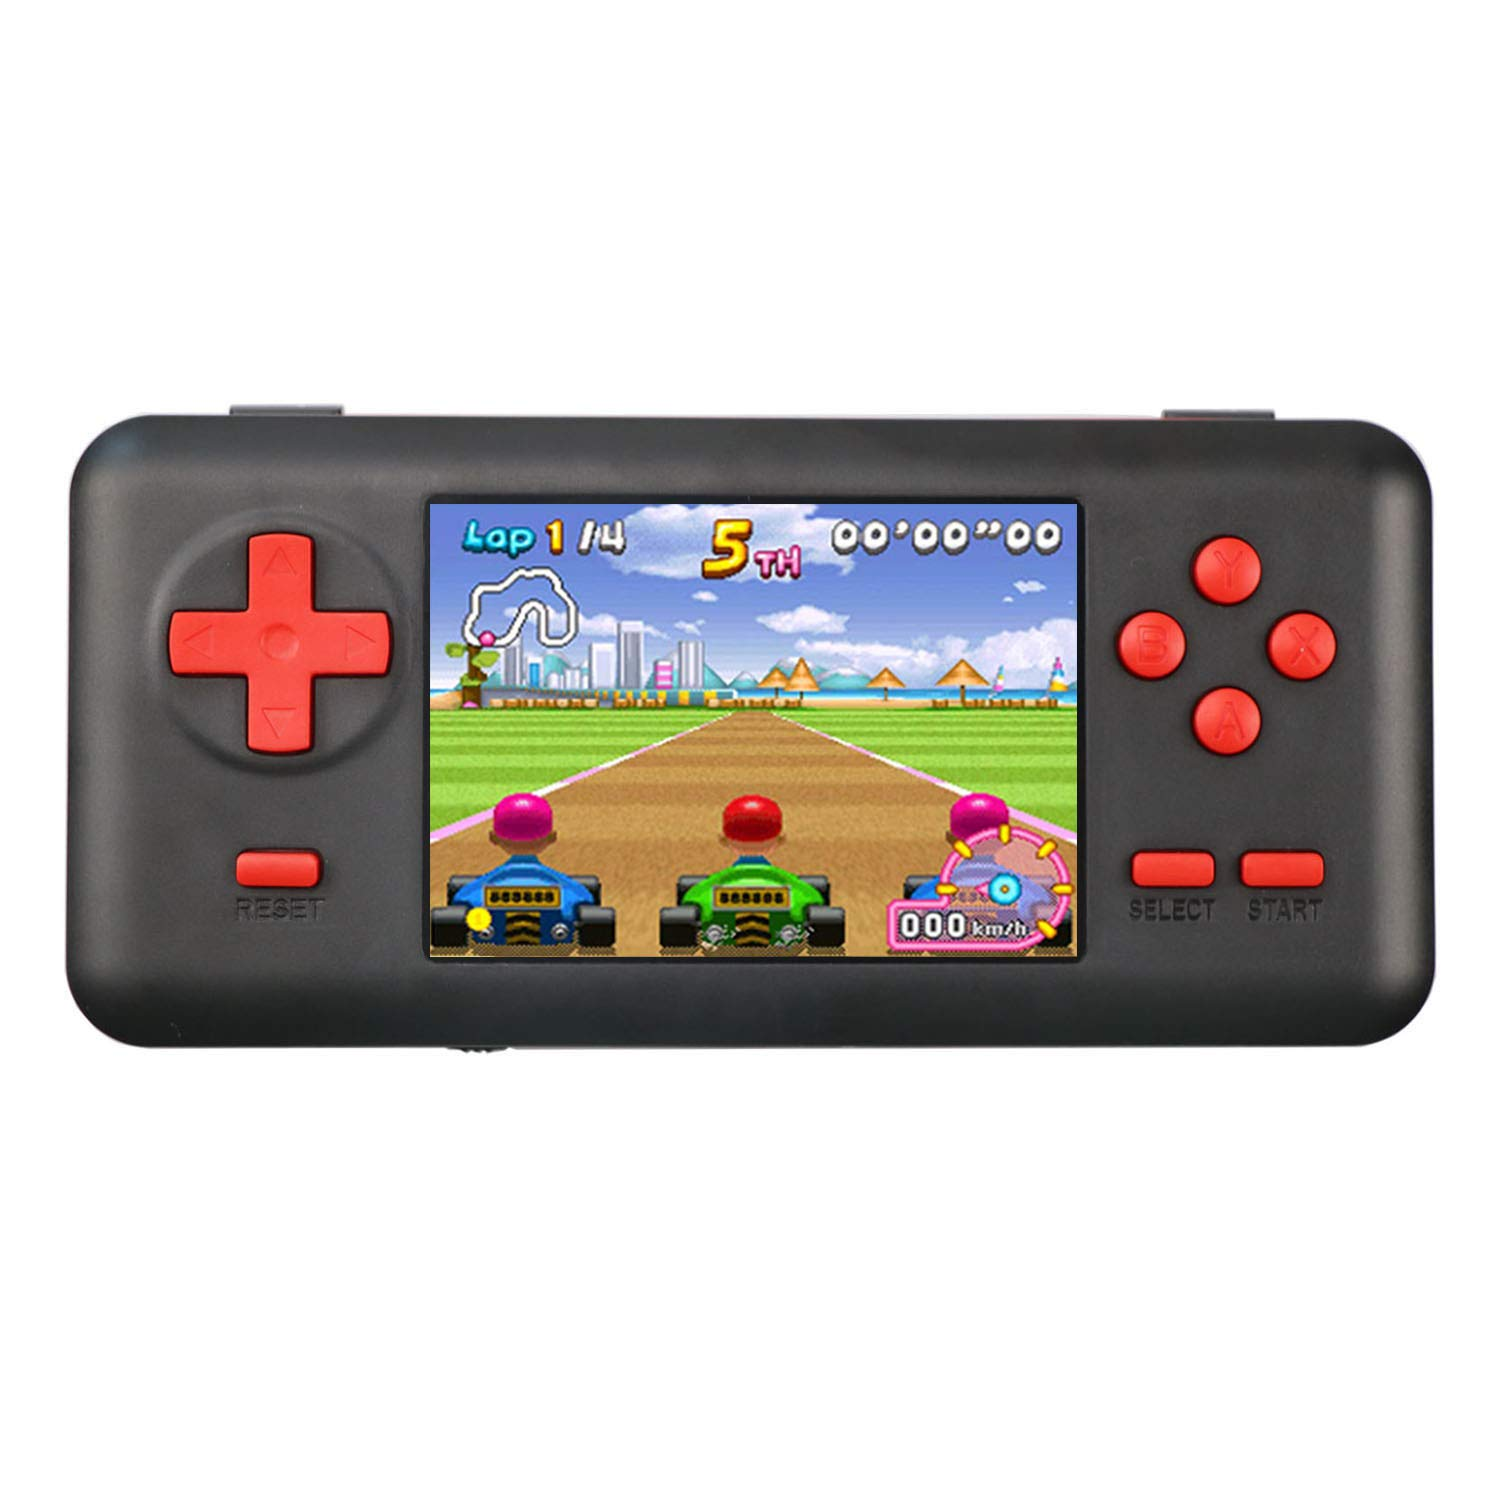 JAFATOY Handheld Games Console Built-in 150 Classic Games 8 Bit Games with AV Cable Can Play on TV Great for Adults Kids (Support TF Card Extensions)